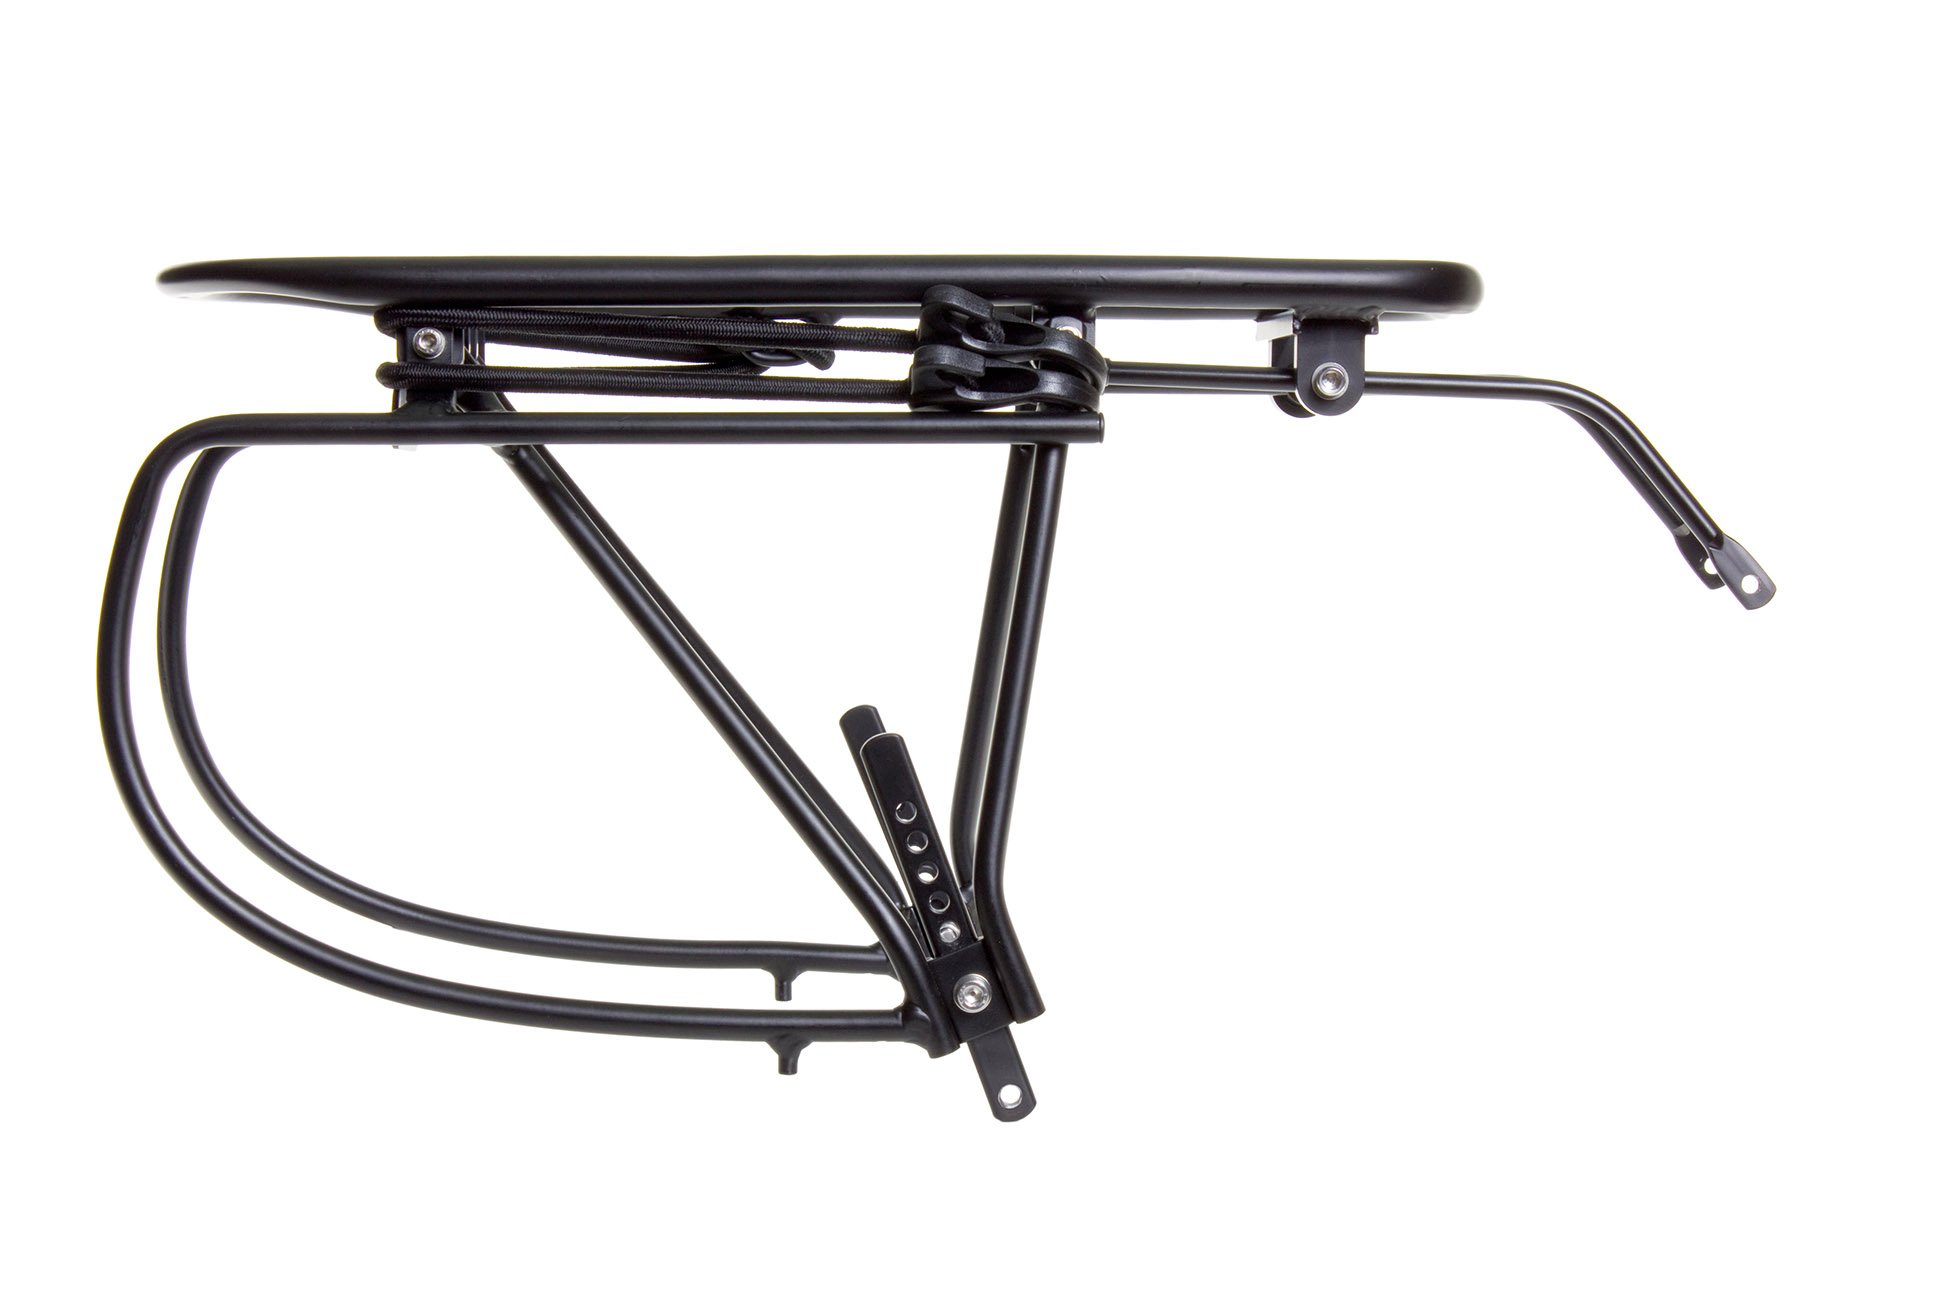 popular img carrying trek aluminum york commuter and urban racks costs is bike good capable tools blackburn rack a of strong with new around decent some manufacturers including topeak